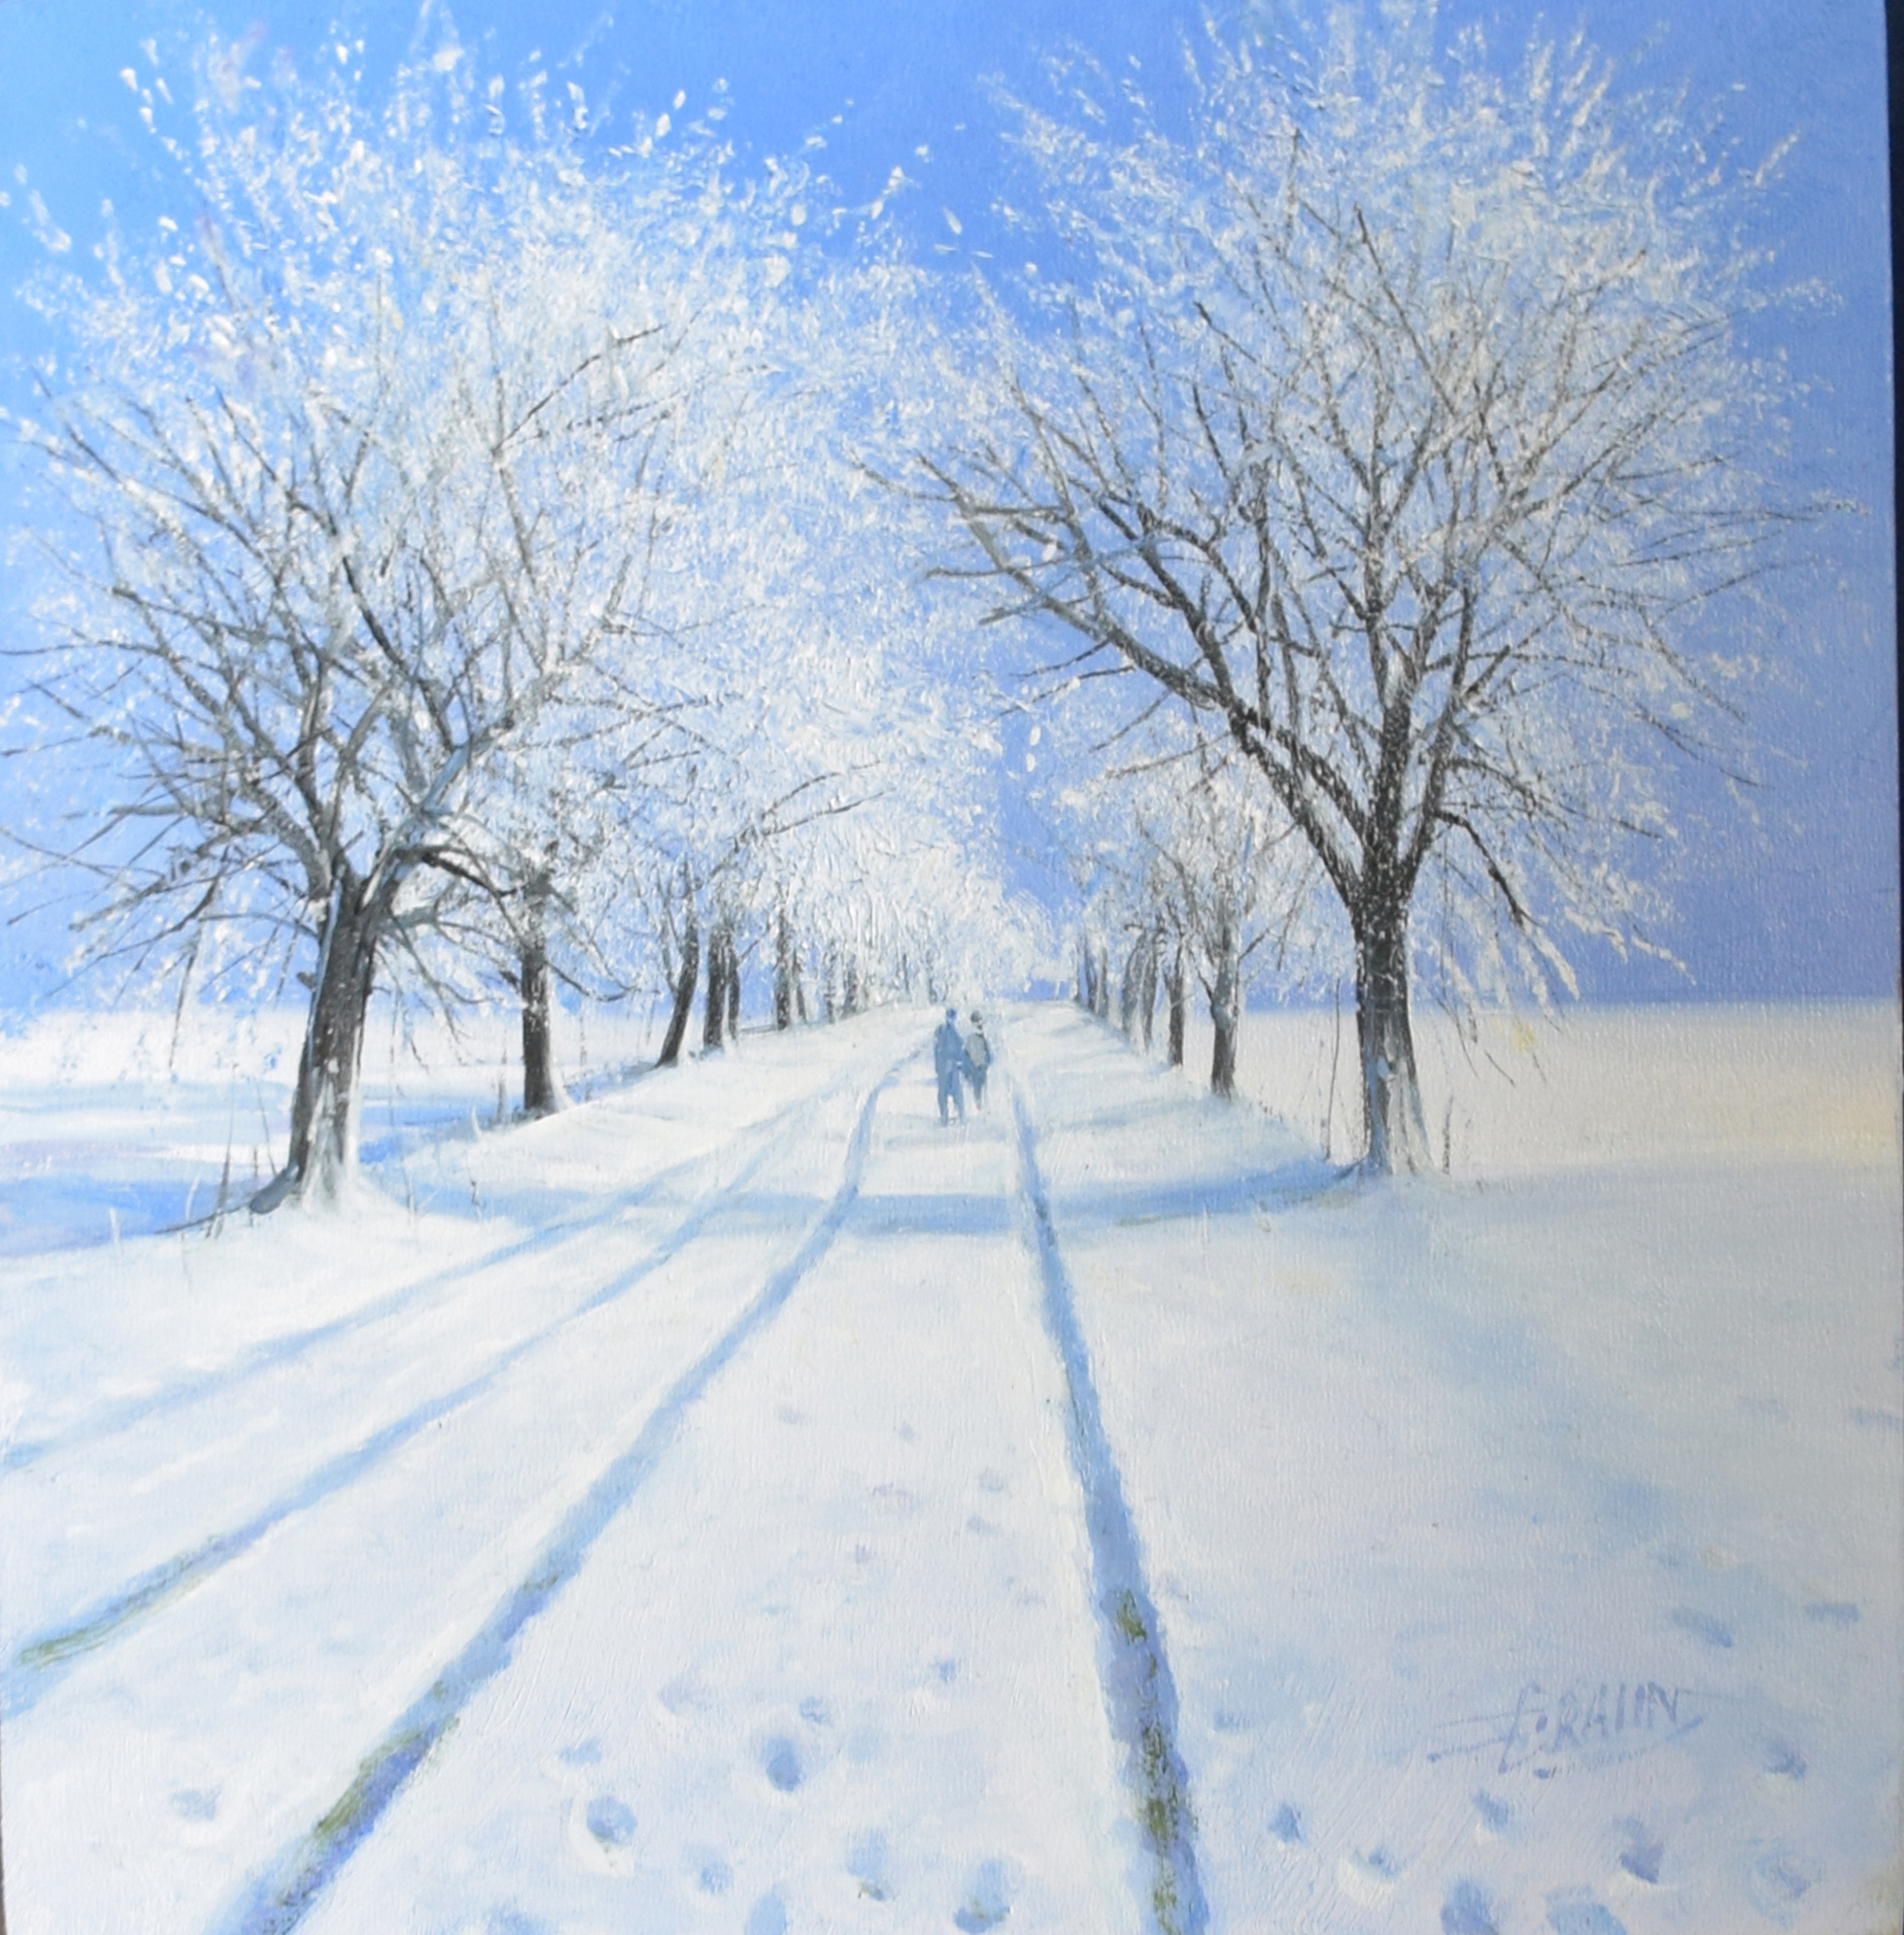 Detlef Rahn - Winter in Brandenburg , 7840-006-980